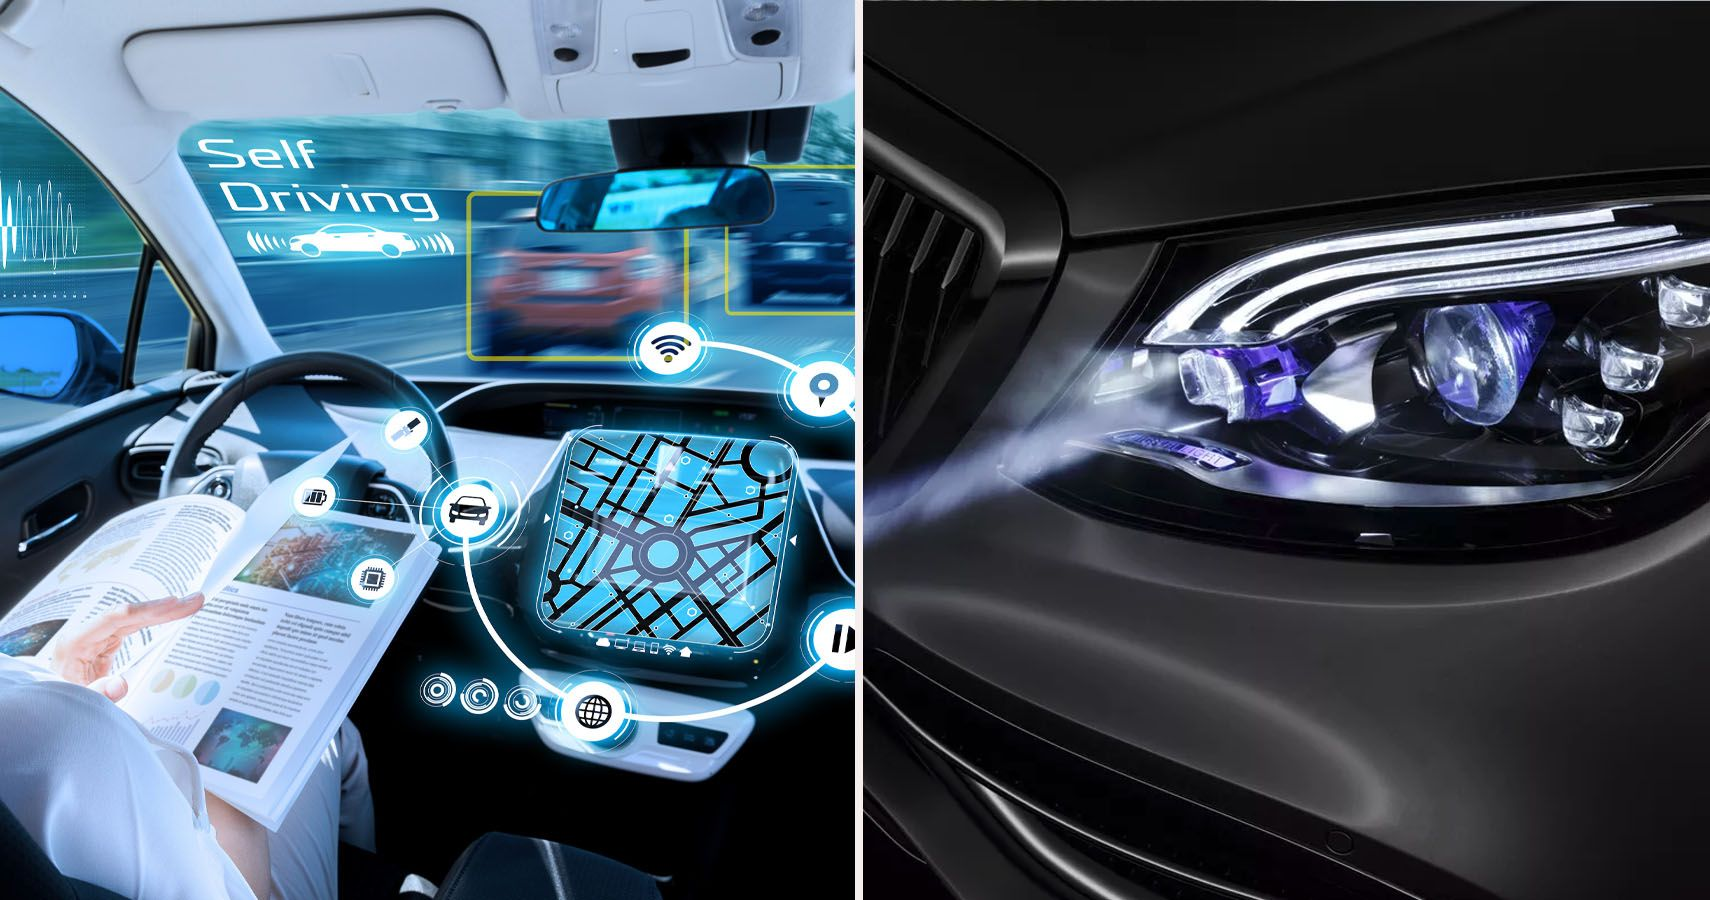 10 New Technological Features That Might Come Standard In Your Future Car